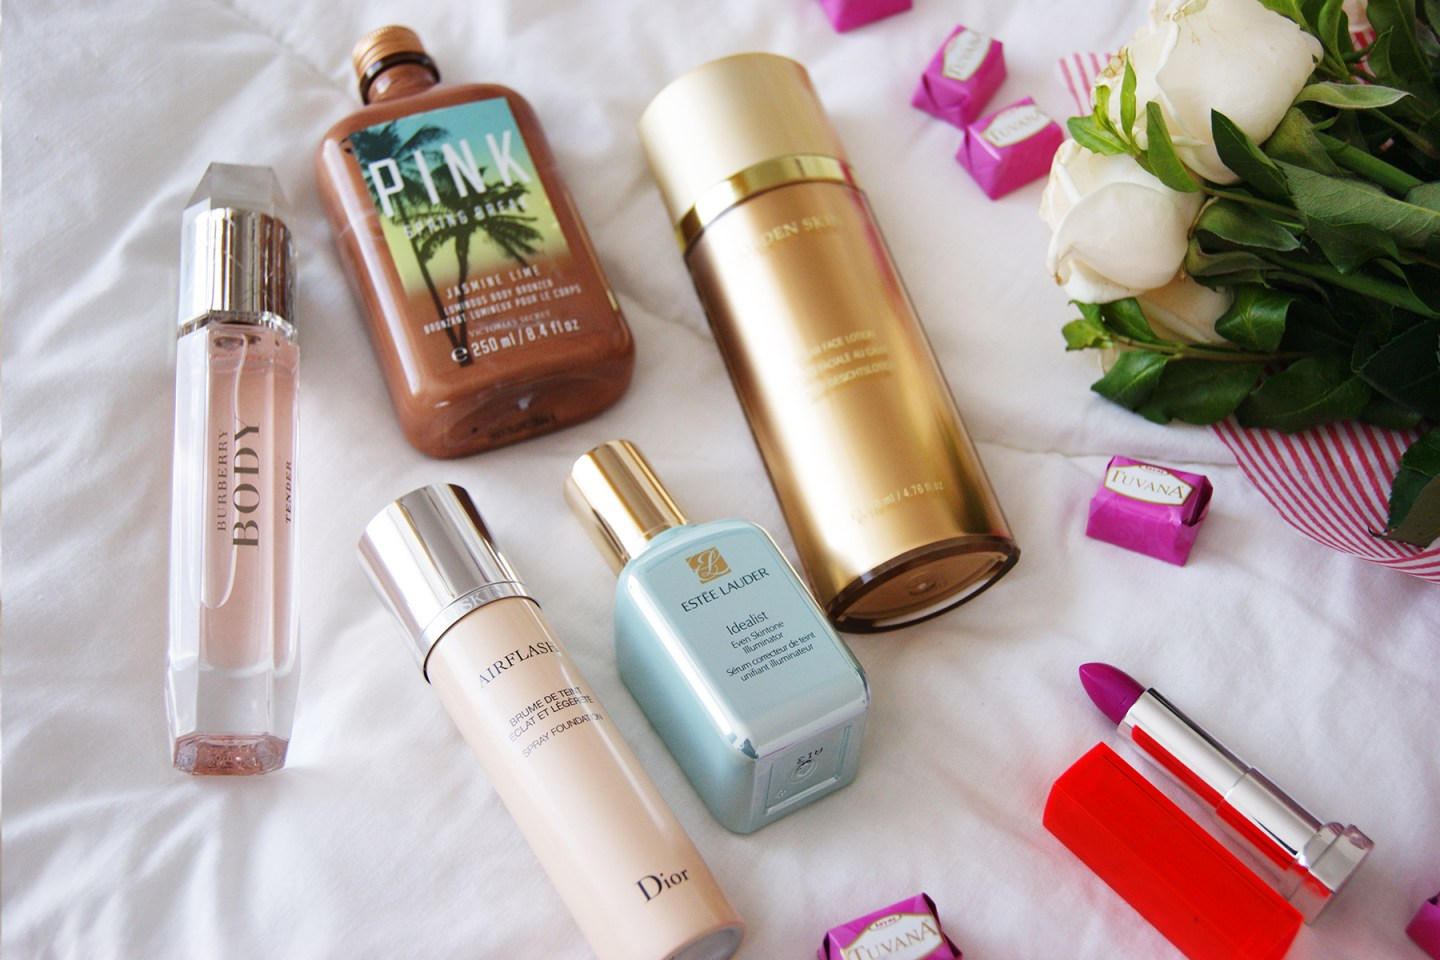 Beauty products latest favorites